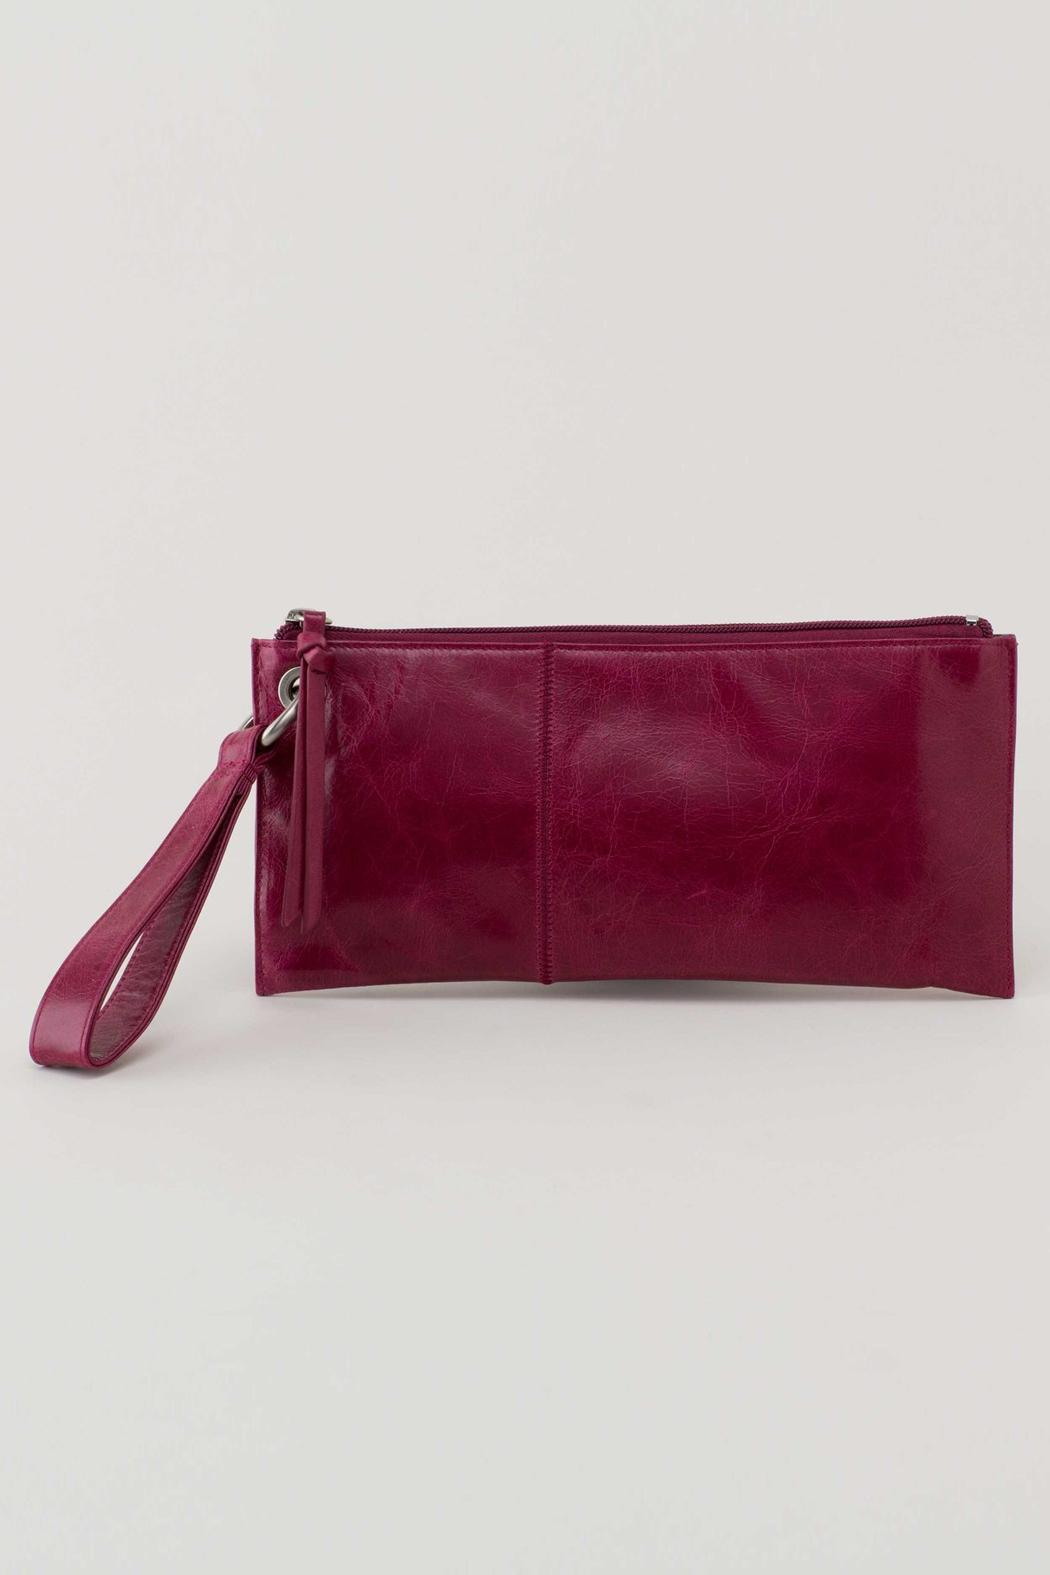 VIDA Leather Statement Clutch - Finding Home Clutch by VIDA viFg53w